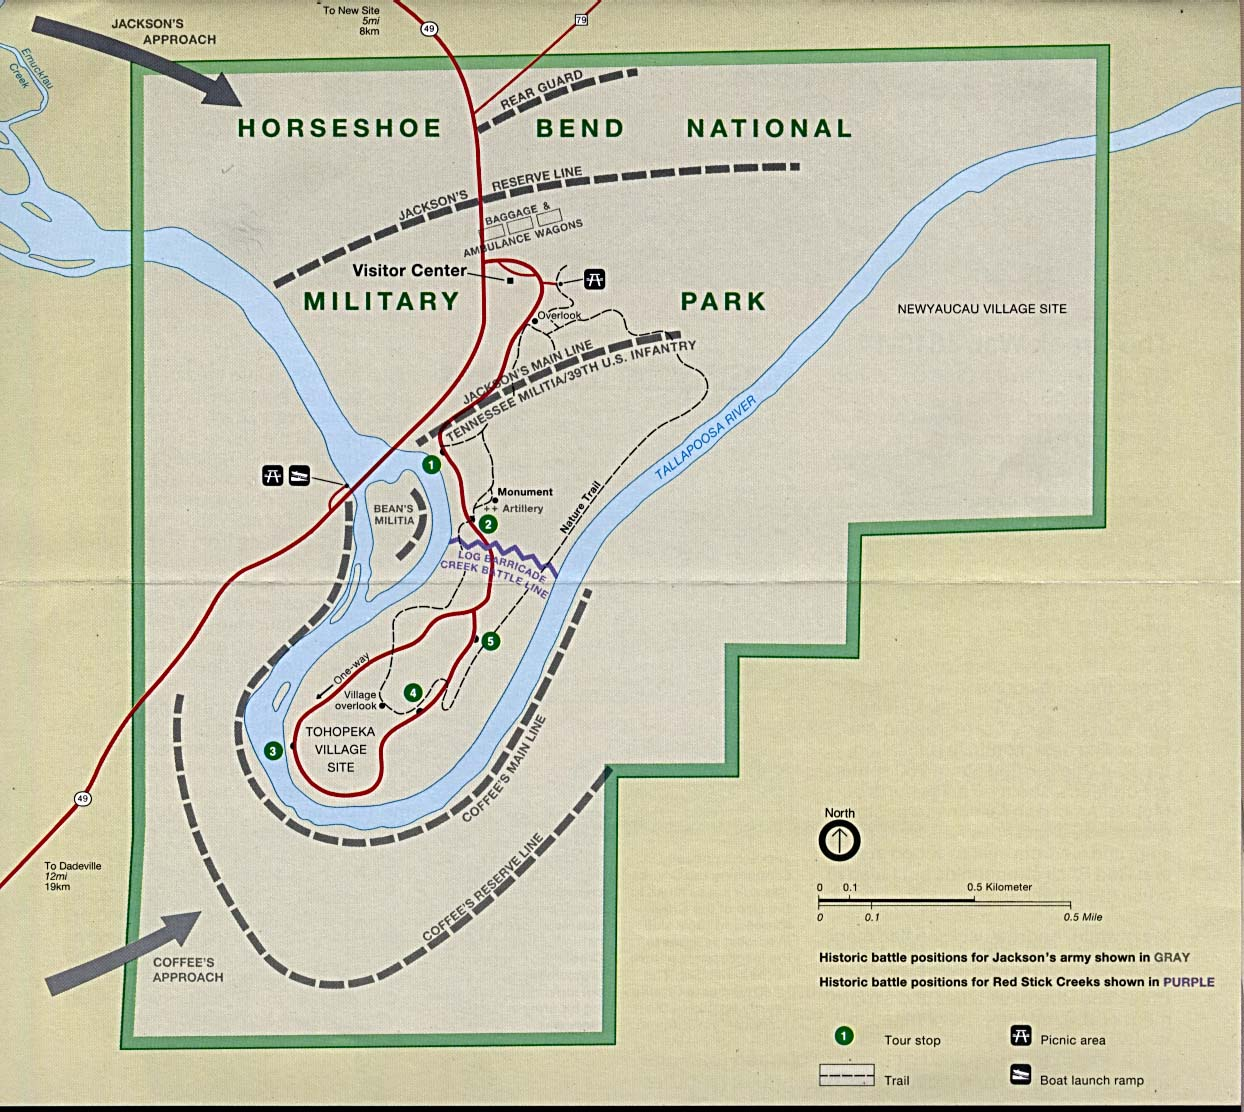 Horseshoe Bend Map